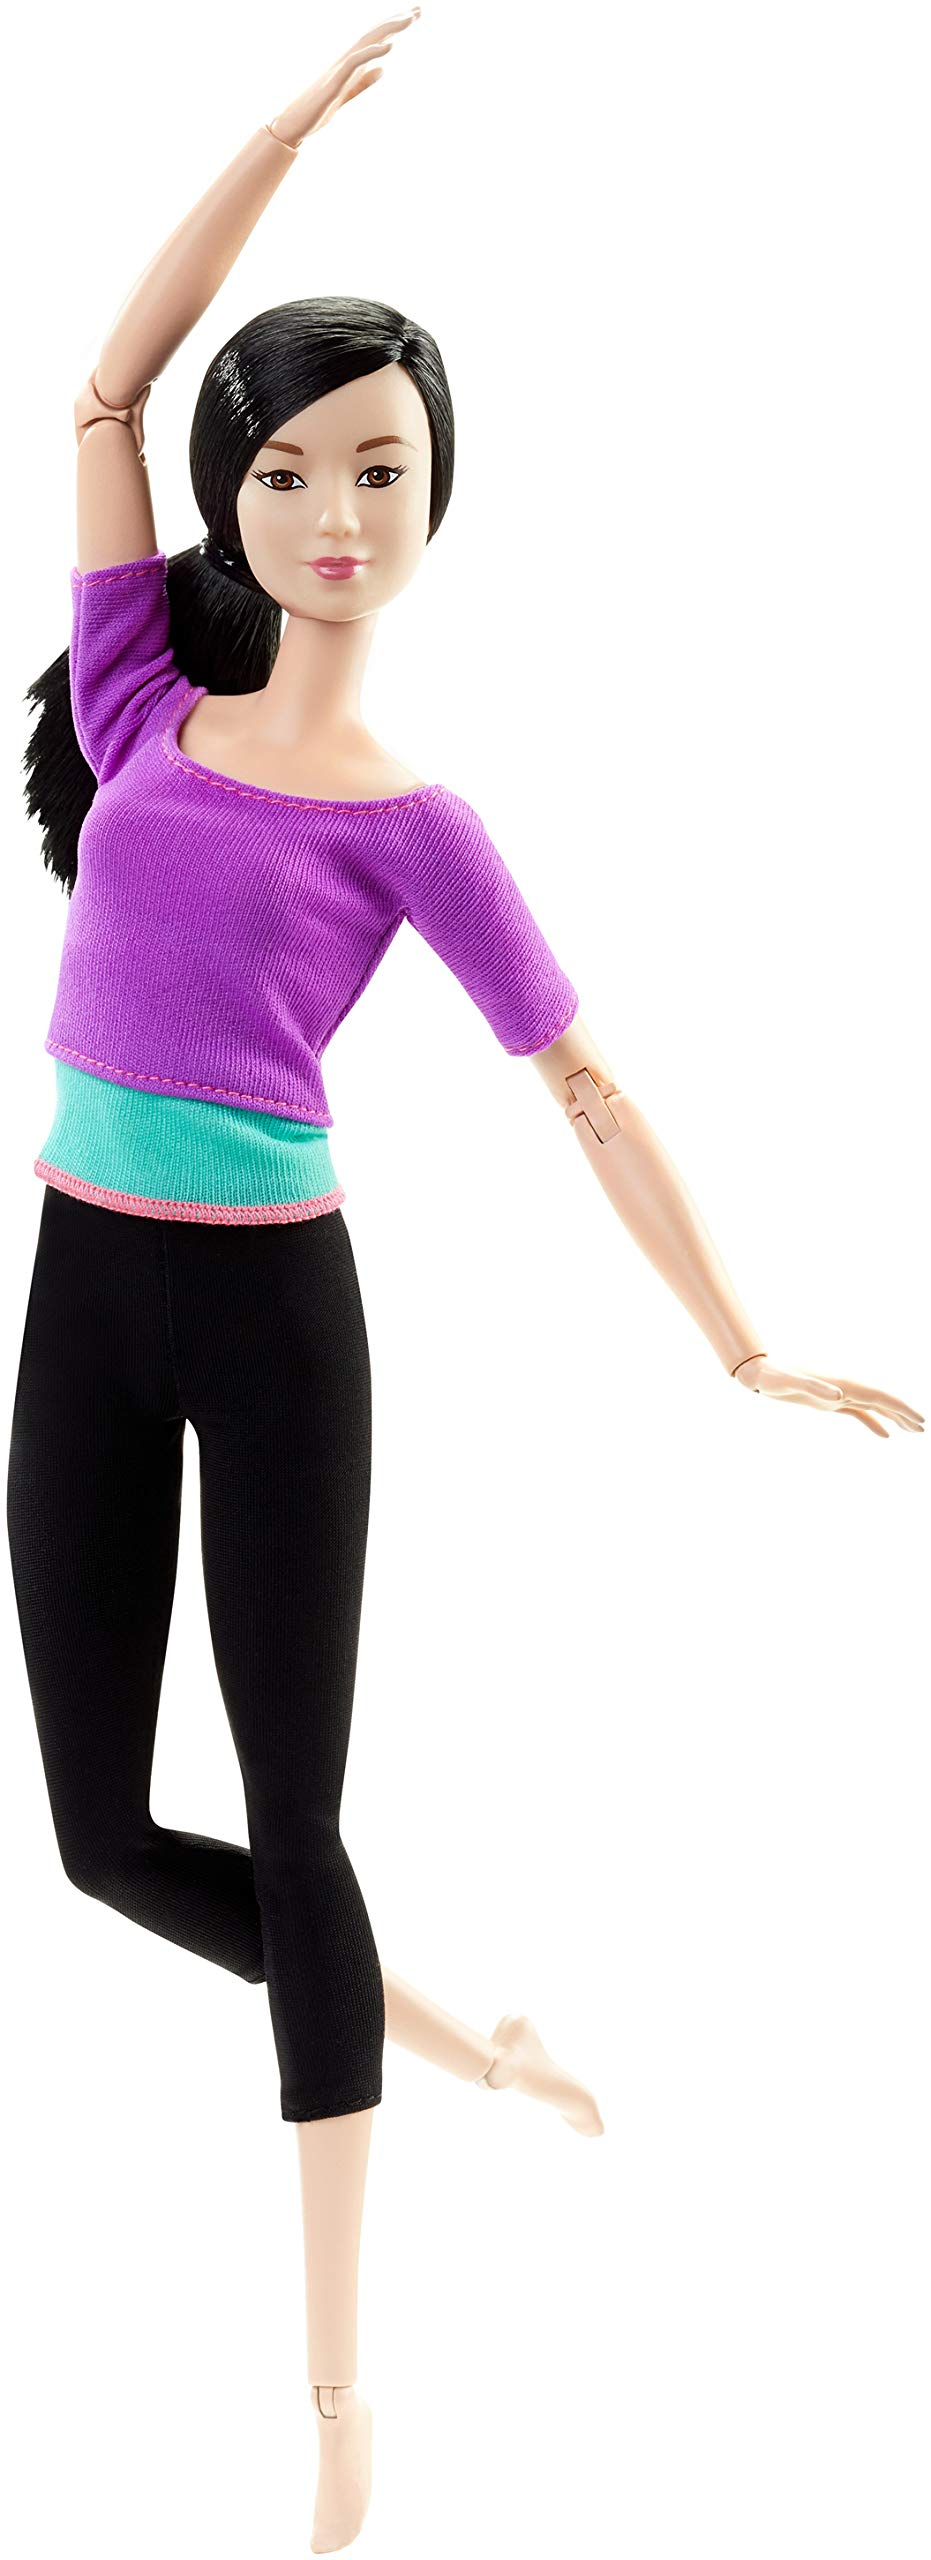 Barbie Made to Move Doll, Purple Top [Amazon Exclusive]